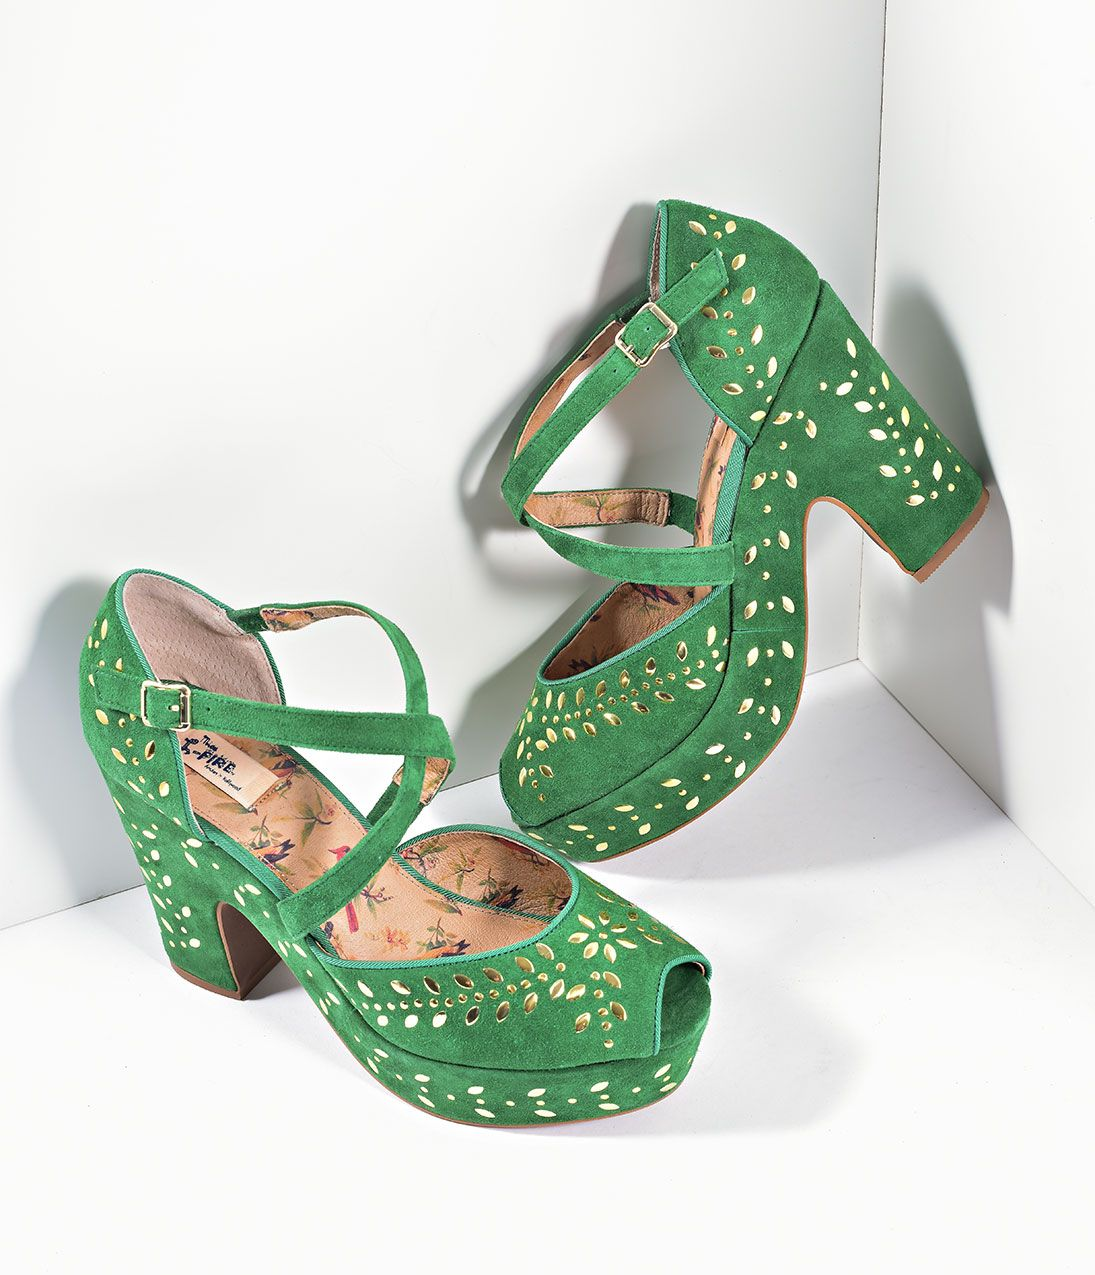 8ecb2b9f625 1950s Style Shoes Miss L Fire Green Suede Gold Studs Platform Peep Toe  Selina Heels Shoes  169.00 AT vintagedancer.com